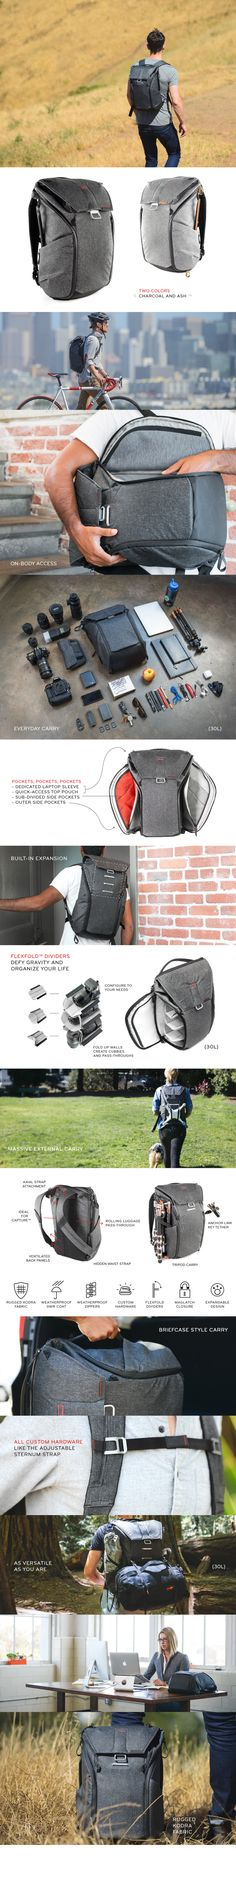 The world's best everyday bags. Become a backer of Kickstarter's most funded active campaign.